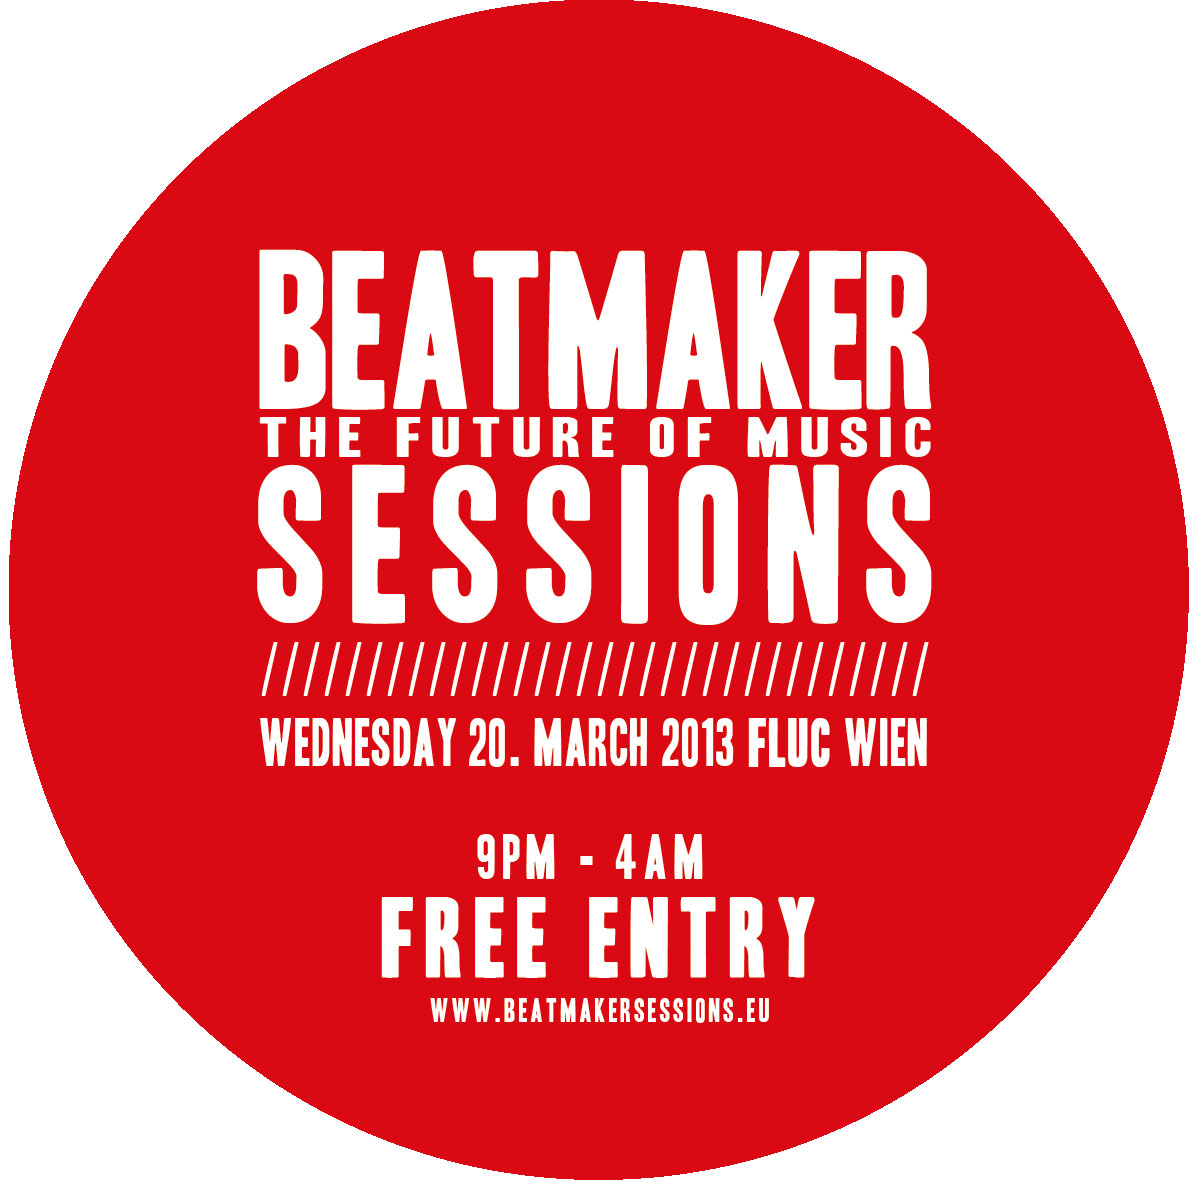 Beatmaker Sessions 20.03.2013